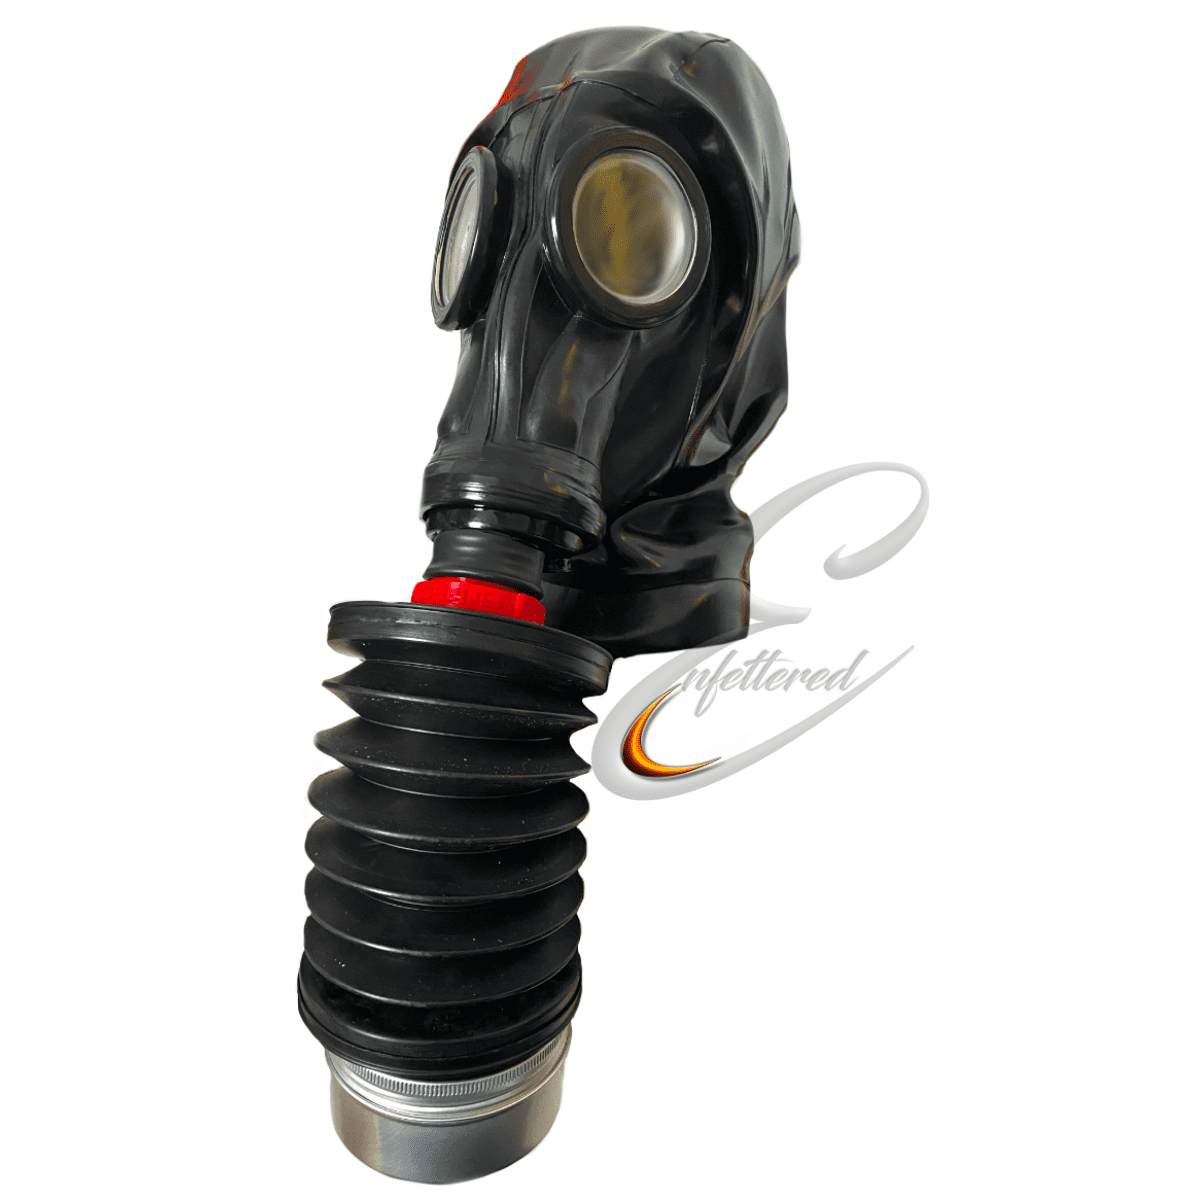 Enfettered Russian Gas Mask Hood with Aroma Bellows